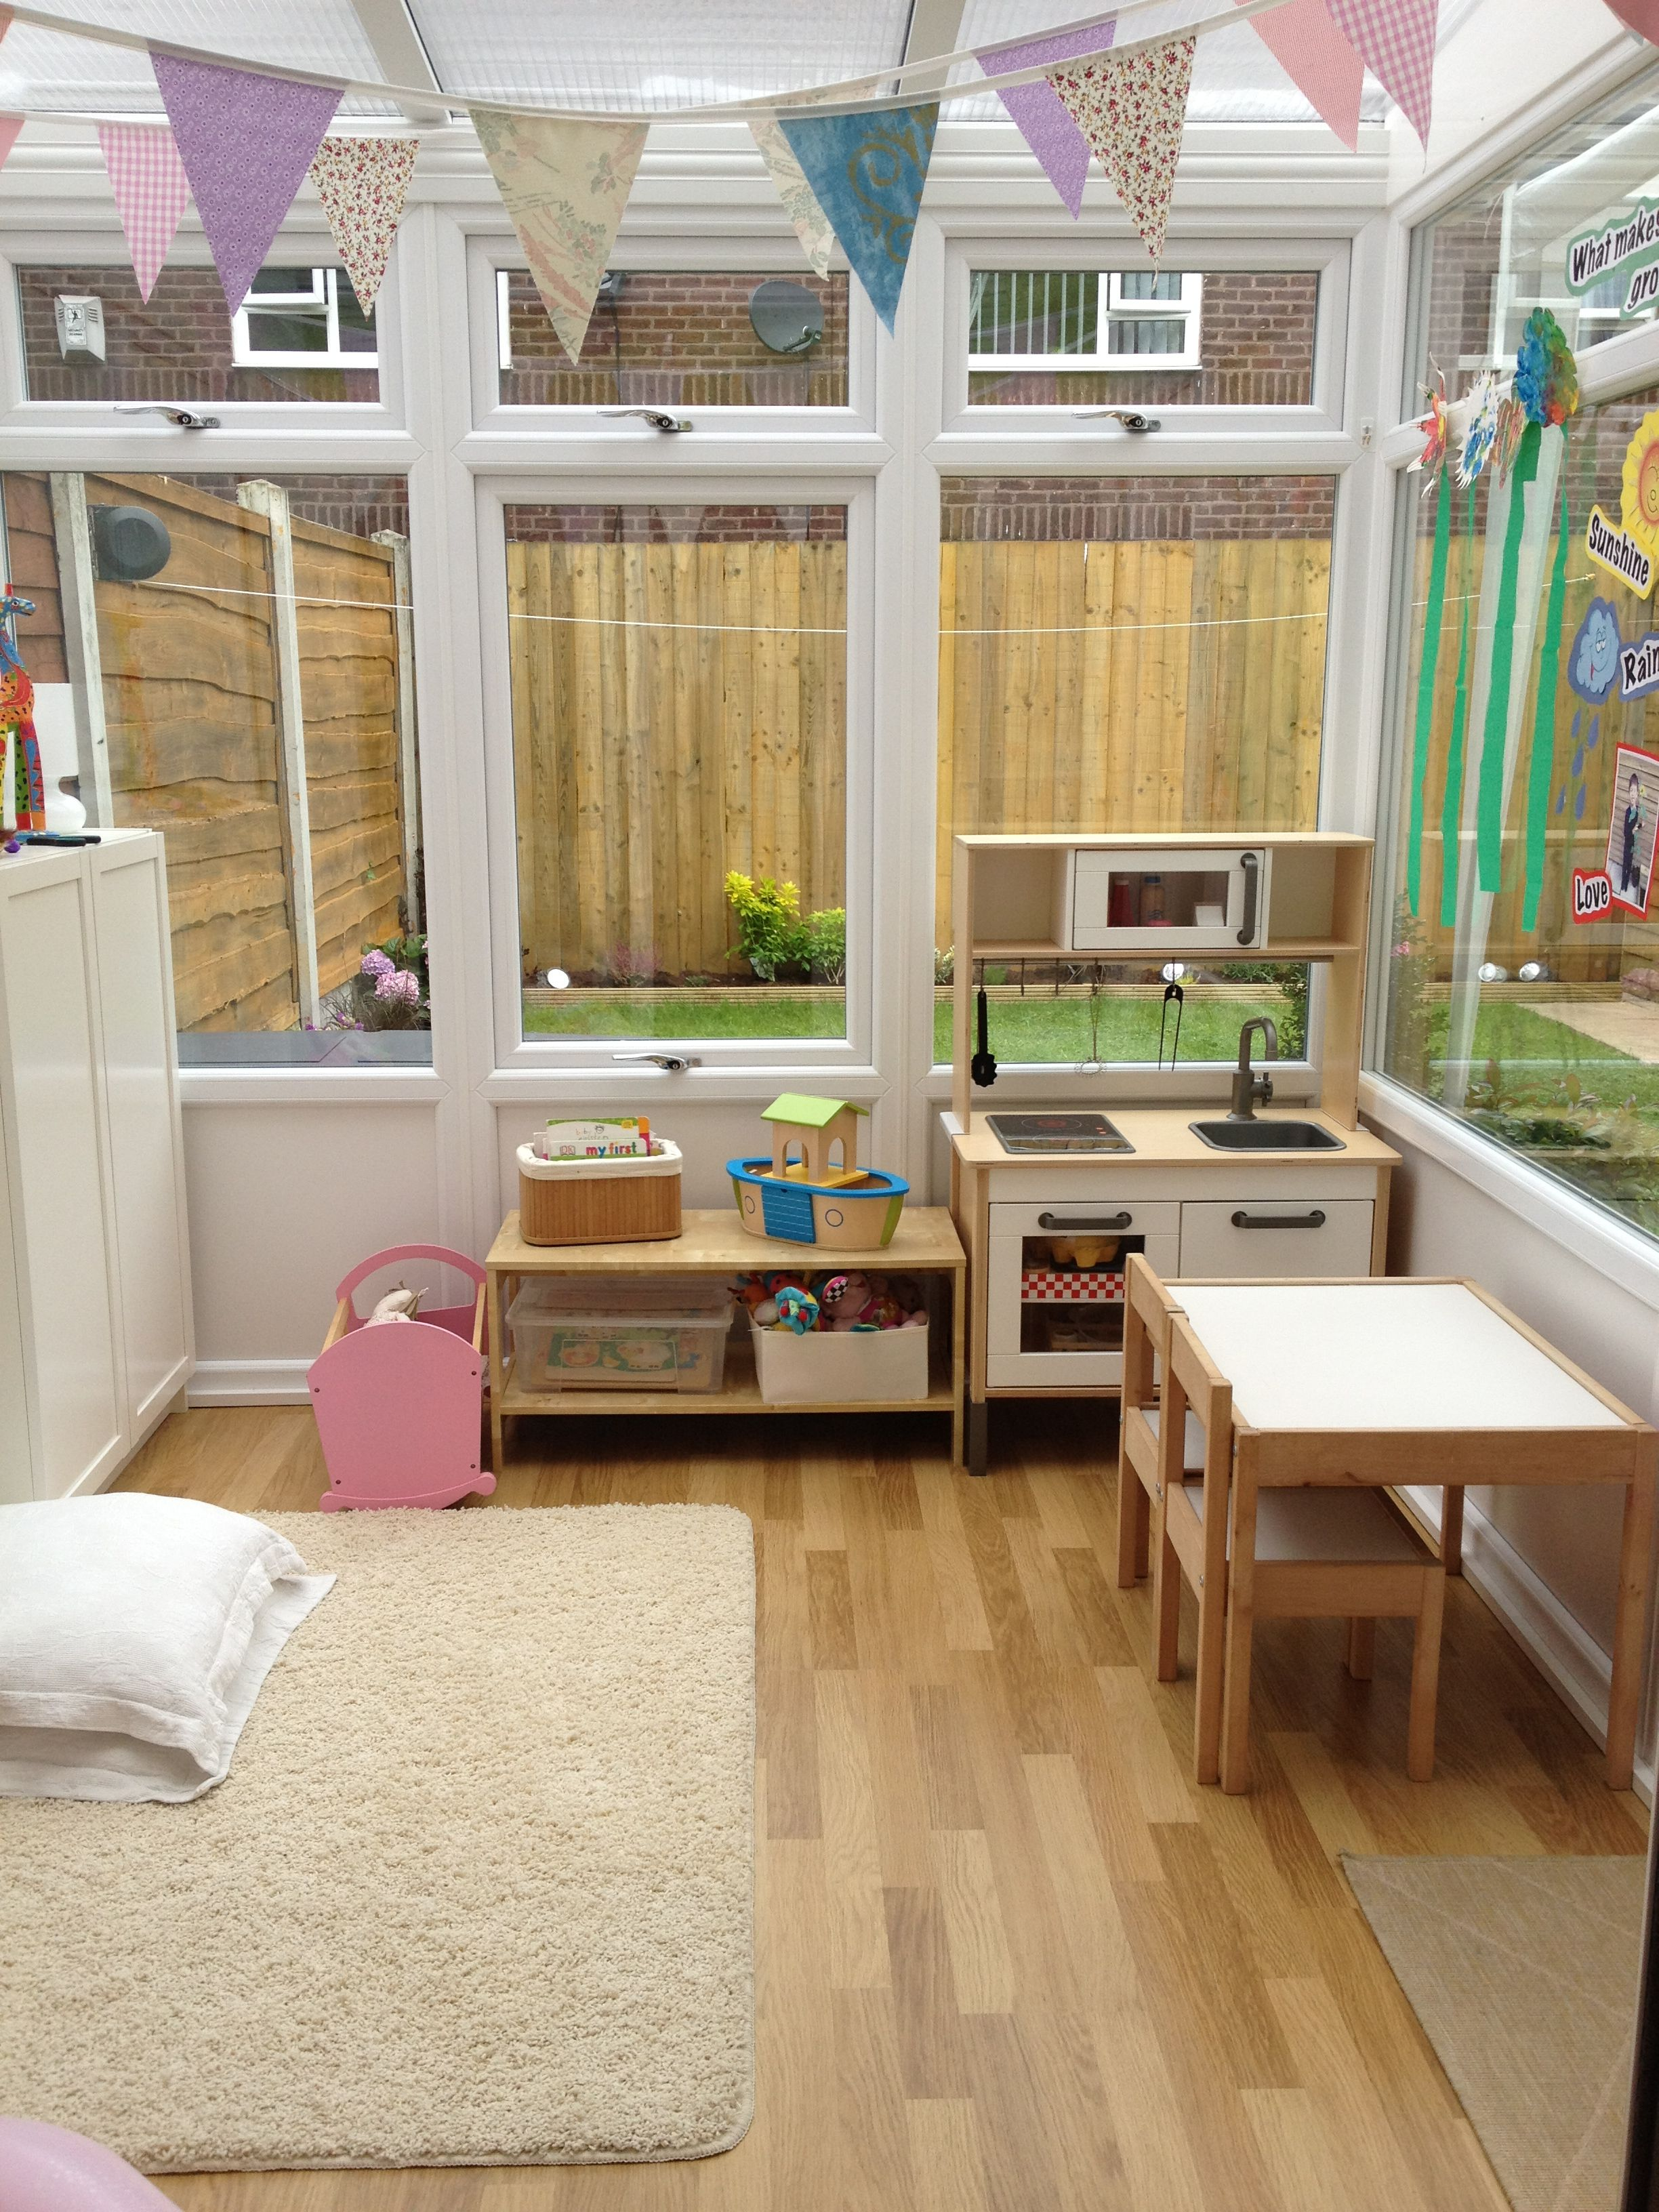 Conservatory Converted Into A Playroom Sunroom Playroom Small Playroom Playroom Design